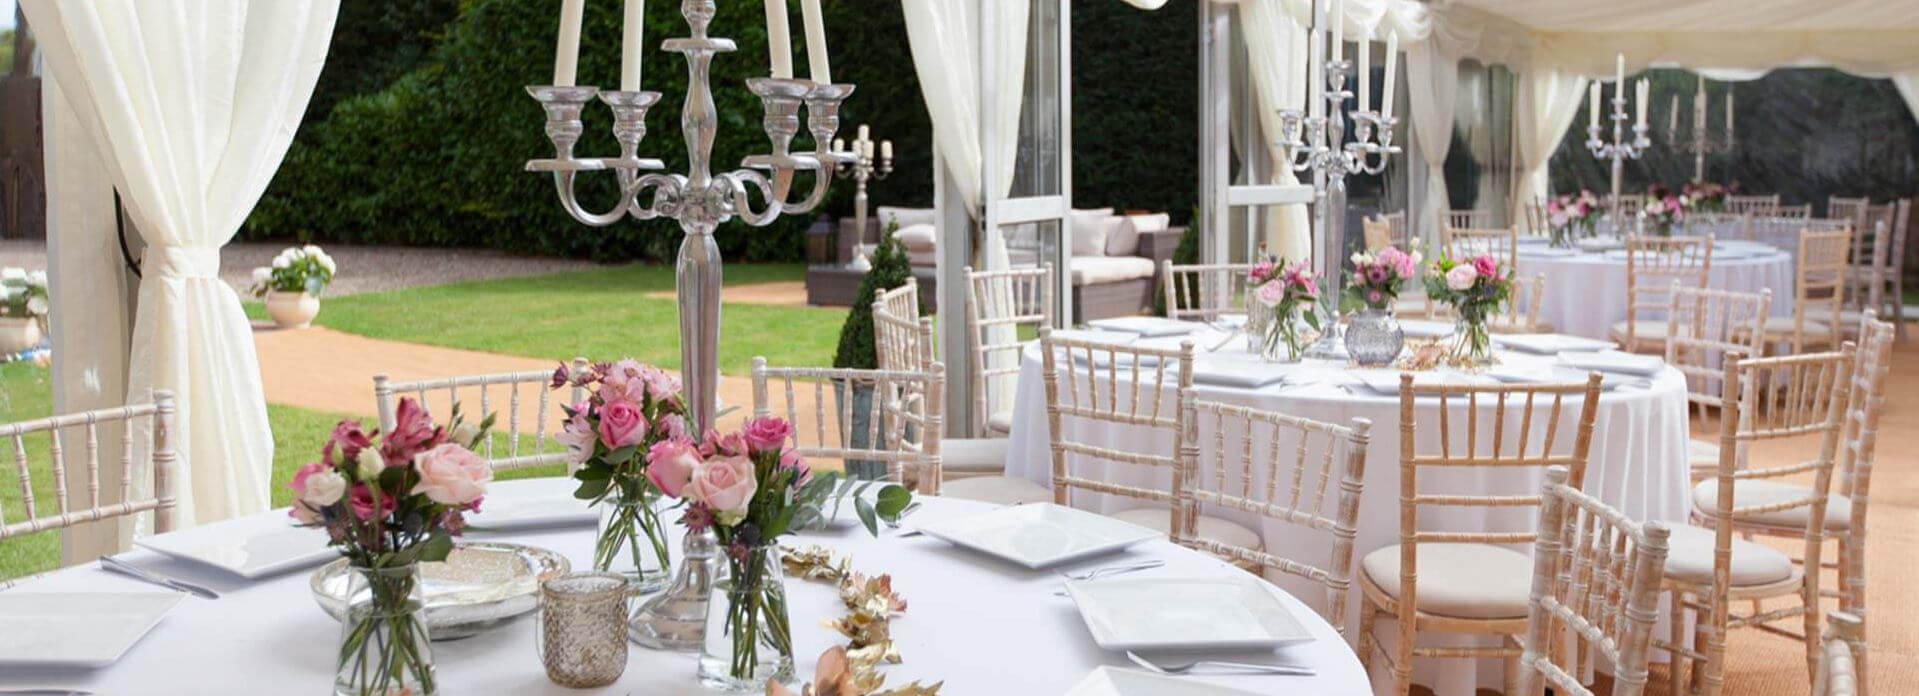 Dressed Tables In Marquee